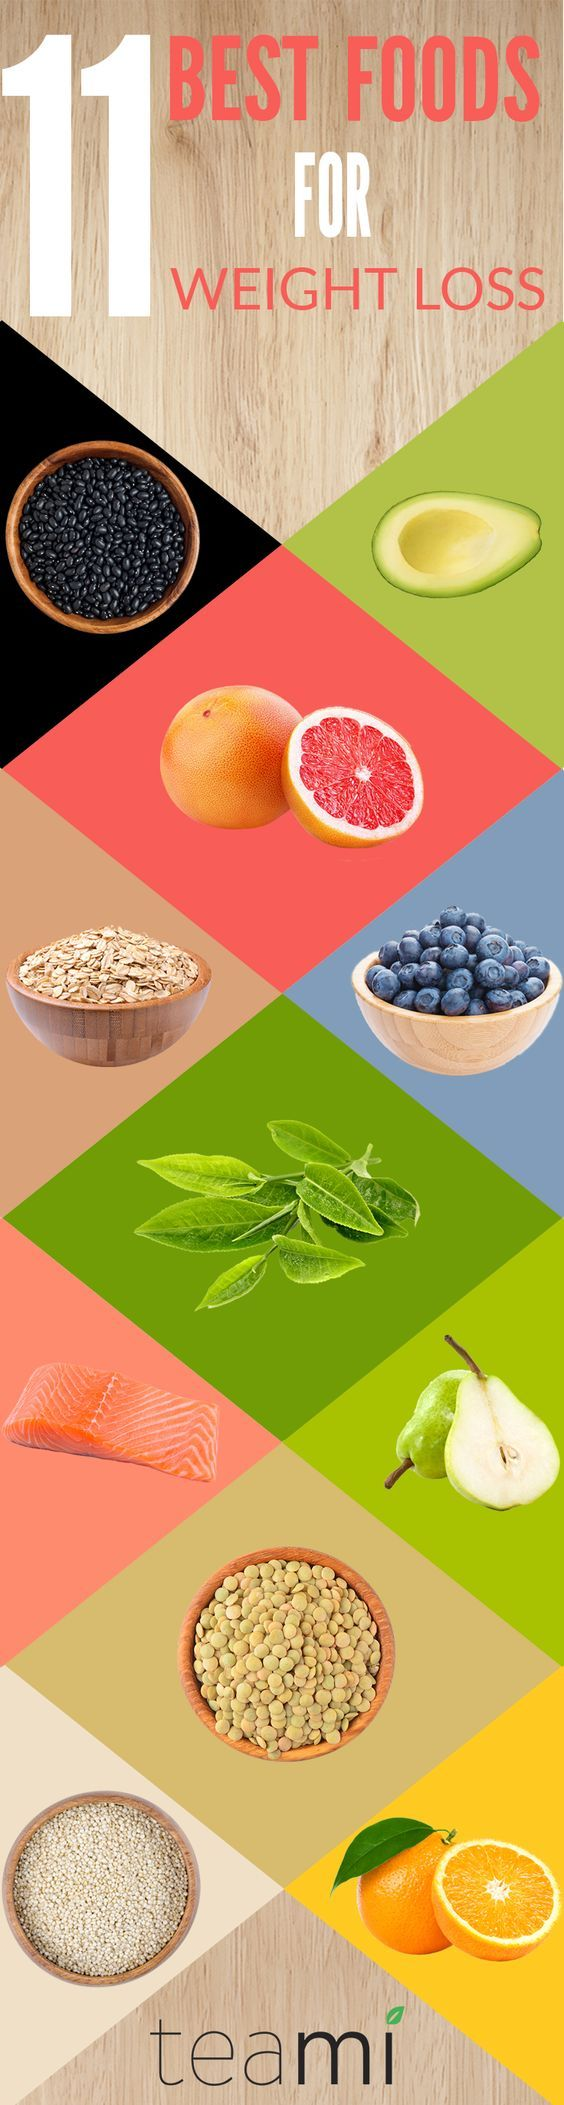 While doing our Teami 30 Day Detox or while just trying to eat a more healthy, balanced diet in 2016 – these are the foods we recommend ADDING to your routine! ~These foods are loaded in proteins your body loves and will not only improve how you look..but how you feel too! TFD